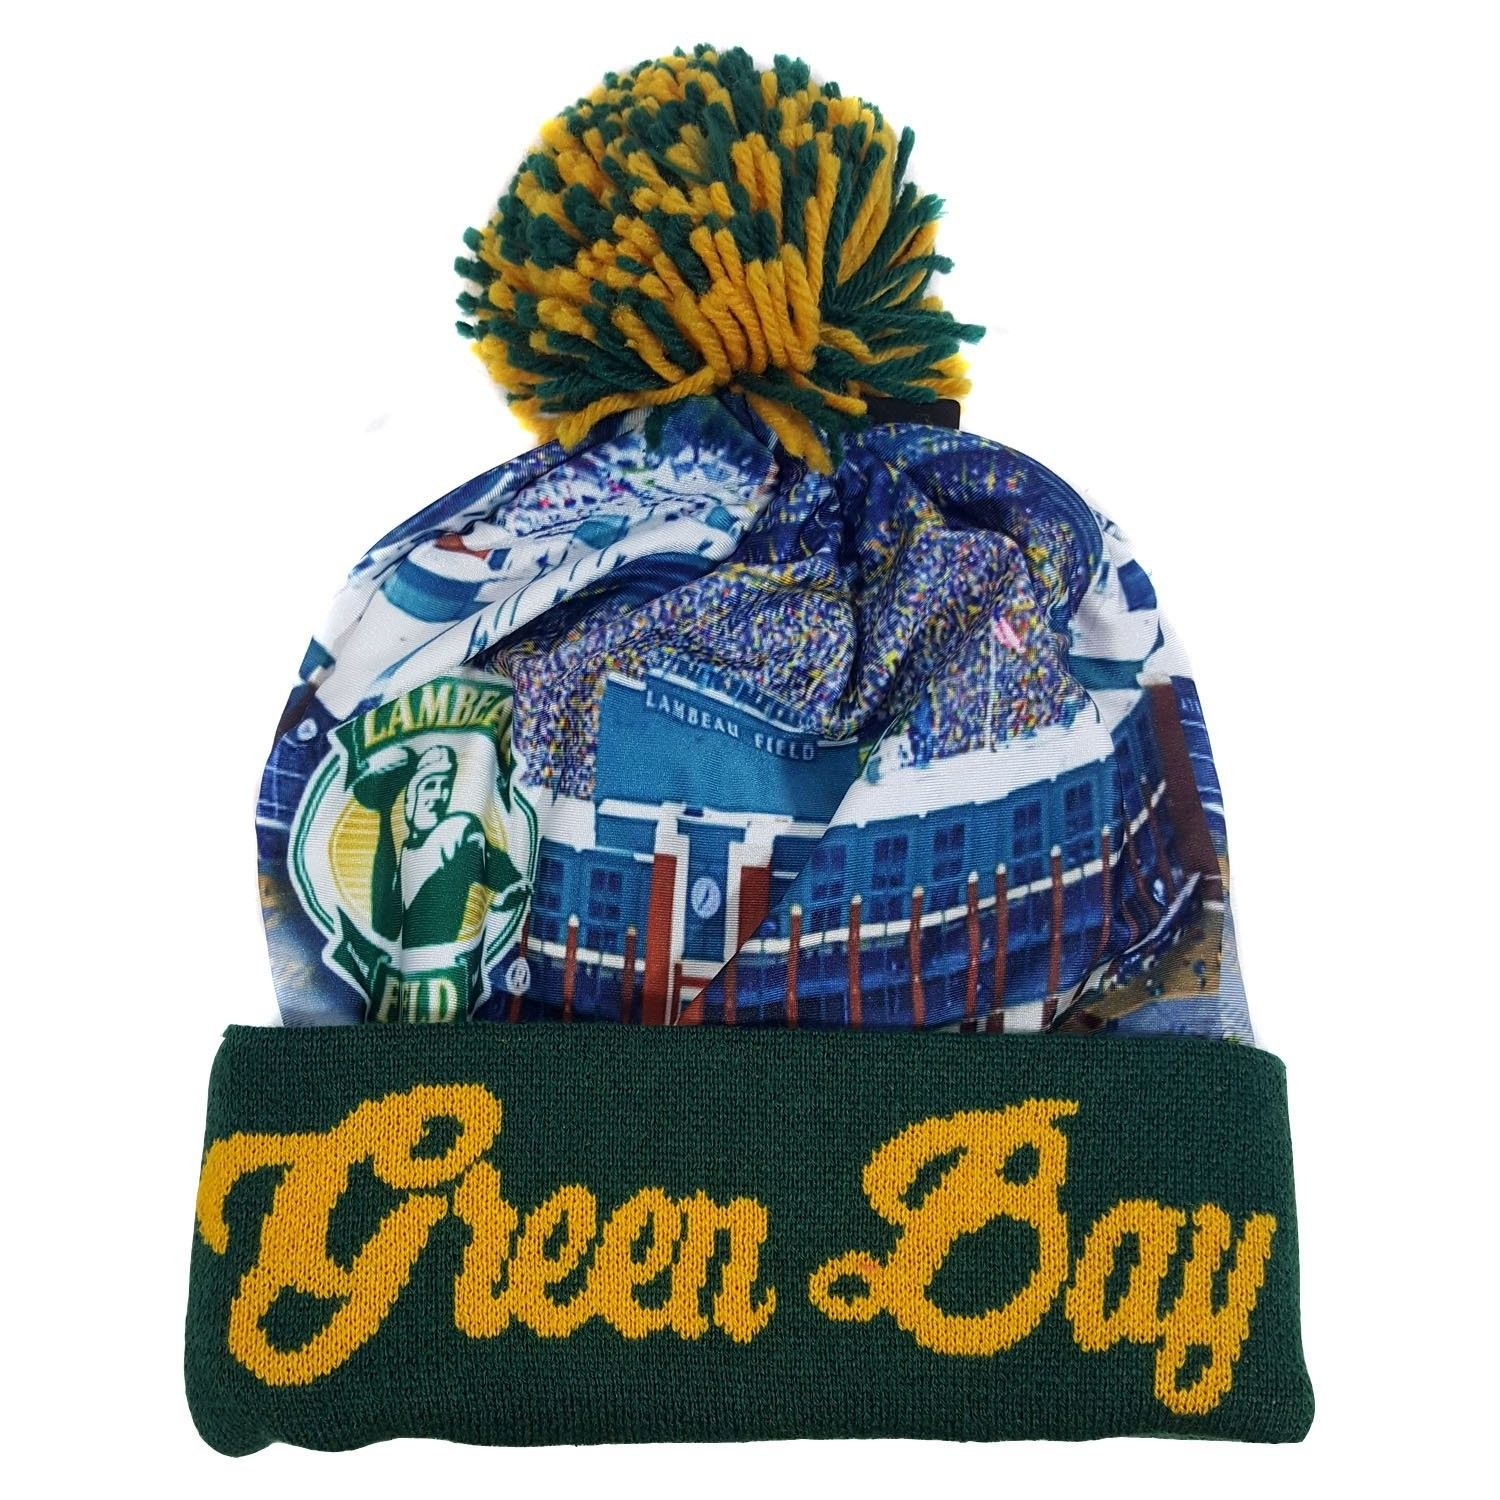 Green Bay Winter Picture City View Beanie Skull Cap - CQ12N7F6XGA - Hats    Caps 2d5d2c9a64f